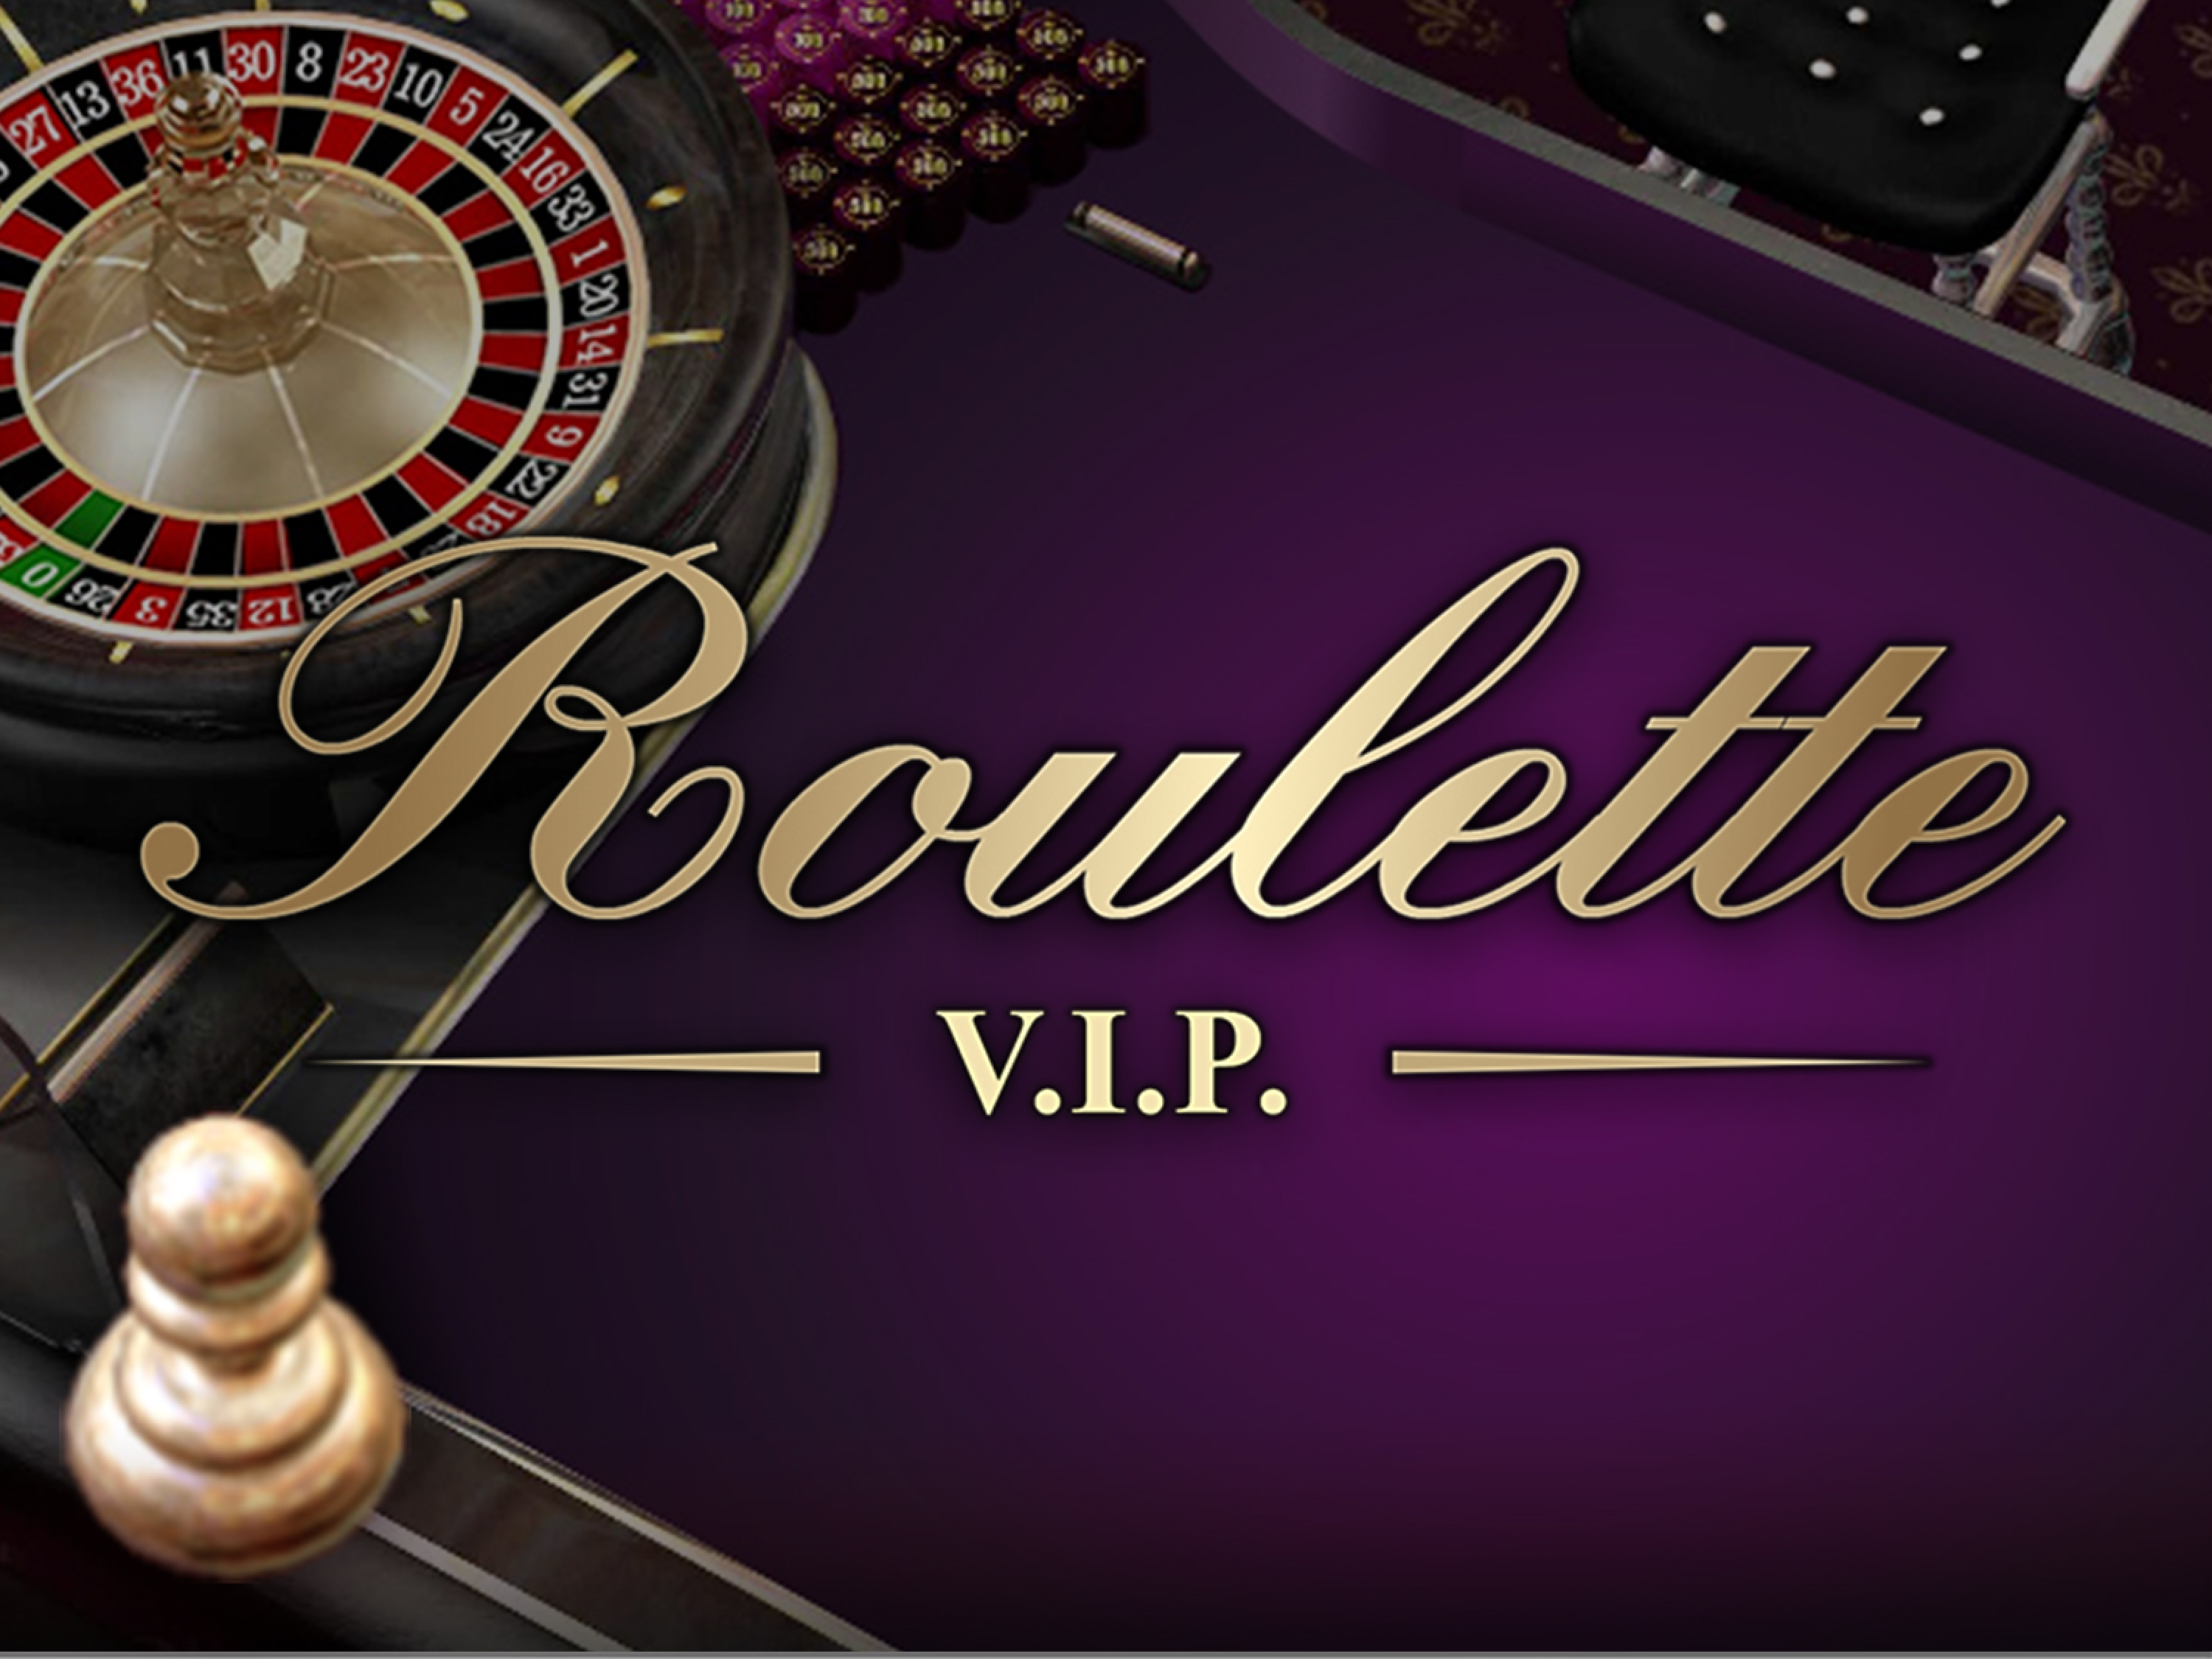 The European Roulette VIP (iSoftBet) Online Slot Demo Game by iSoftBet